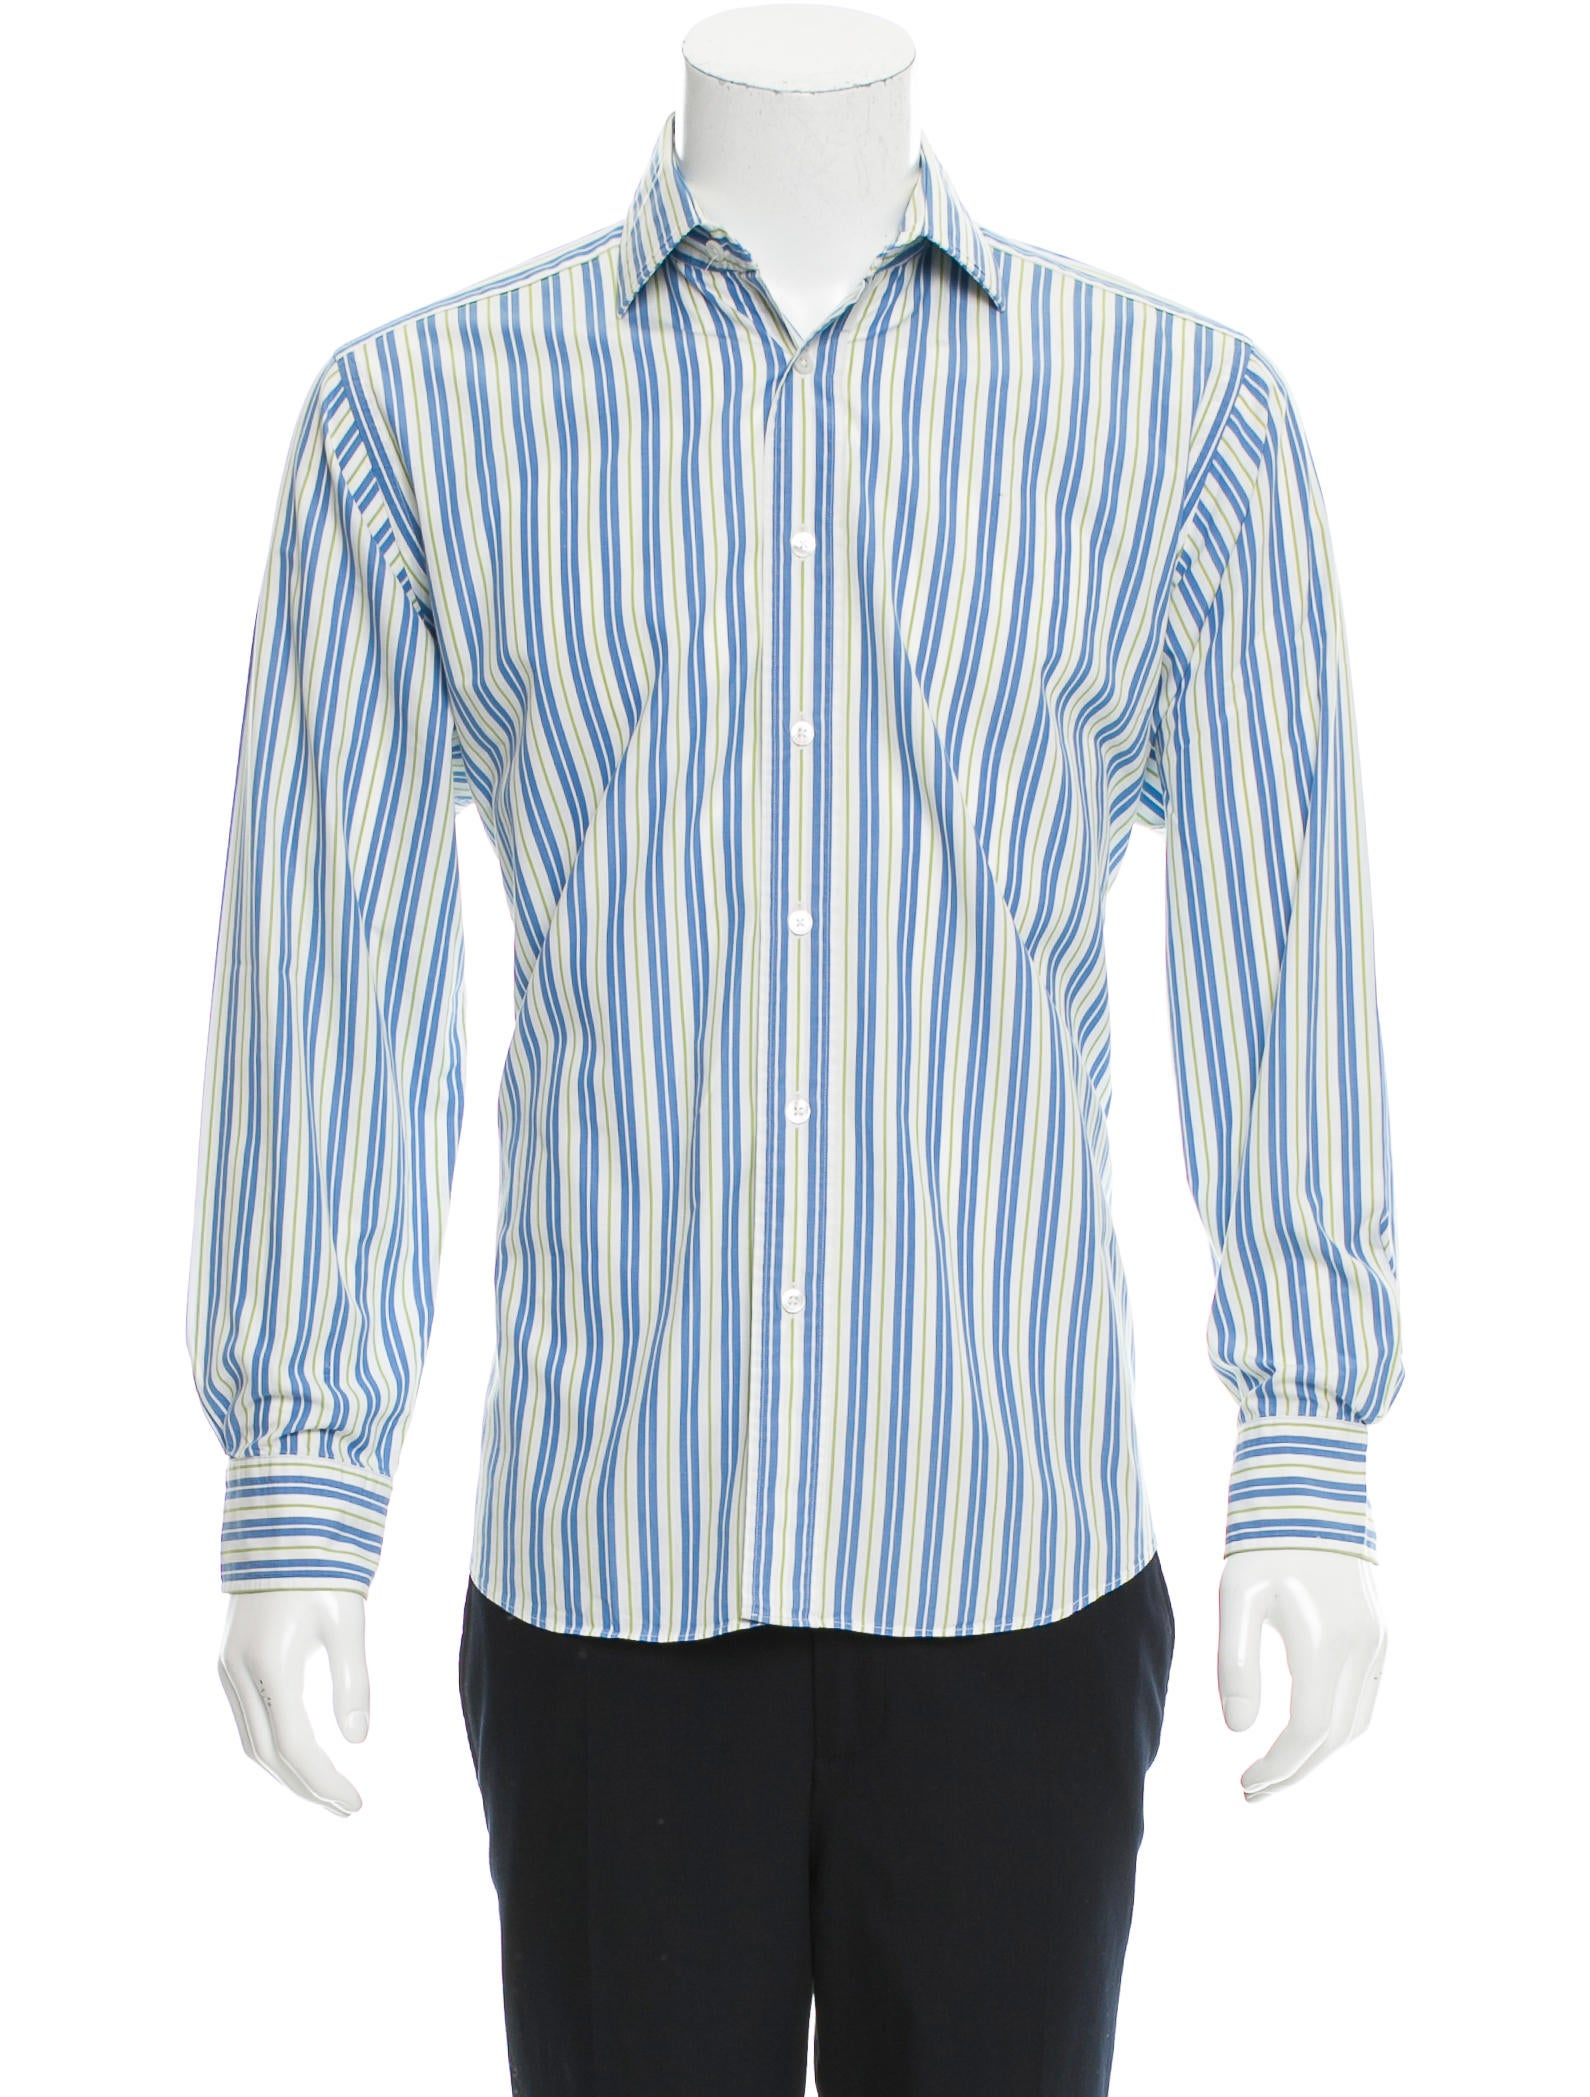 Herm s striped button up shirt clothing her98362 the for Striped button up shirt mens